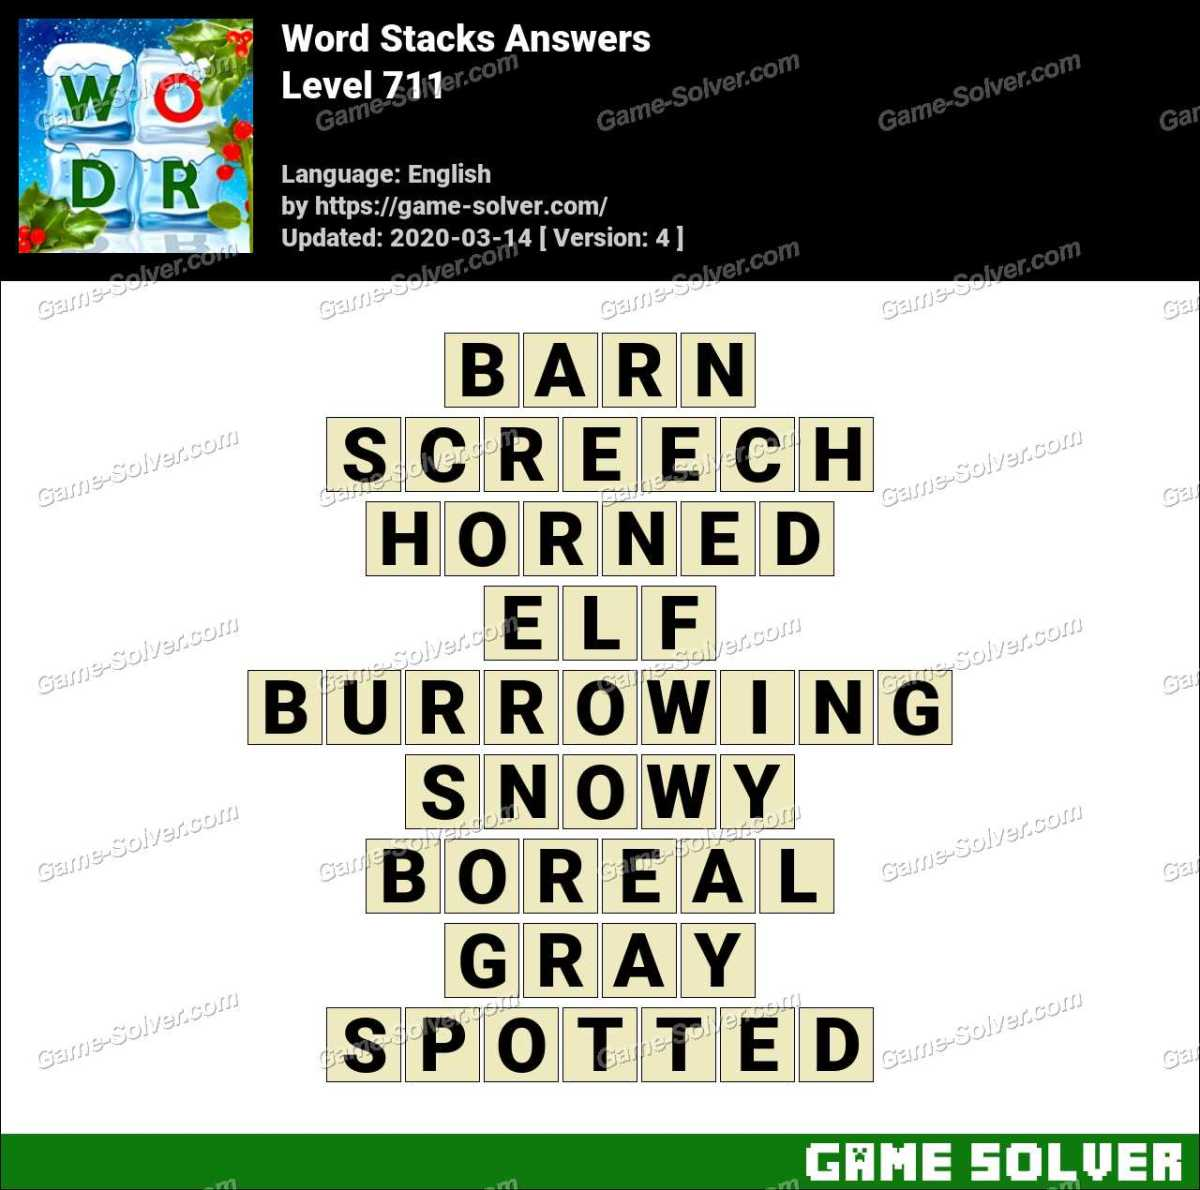 Word Stacks Level 711 Answers